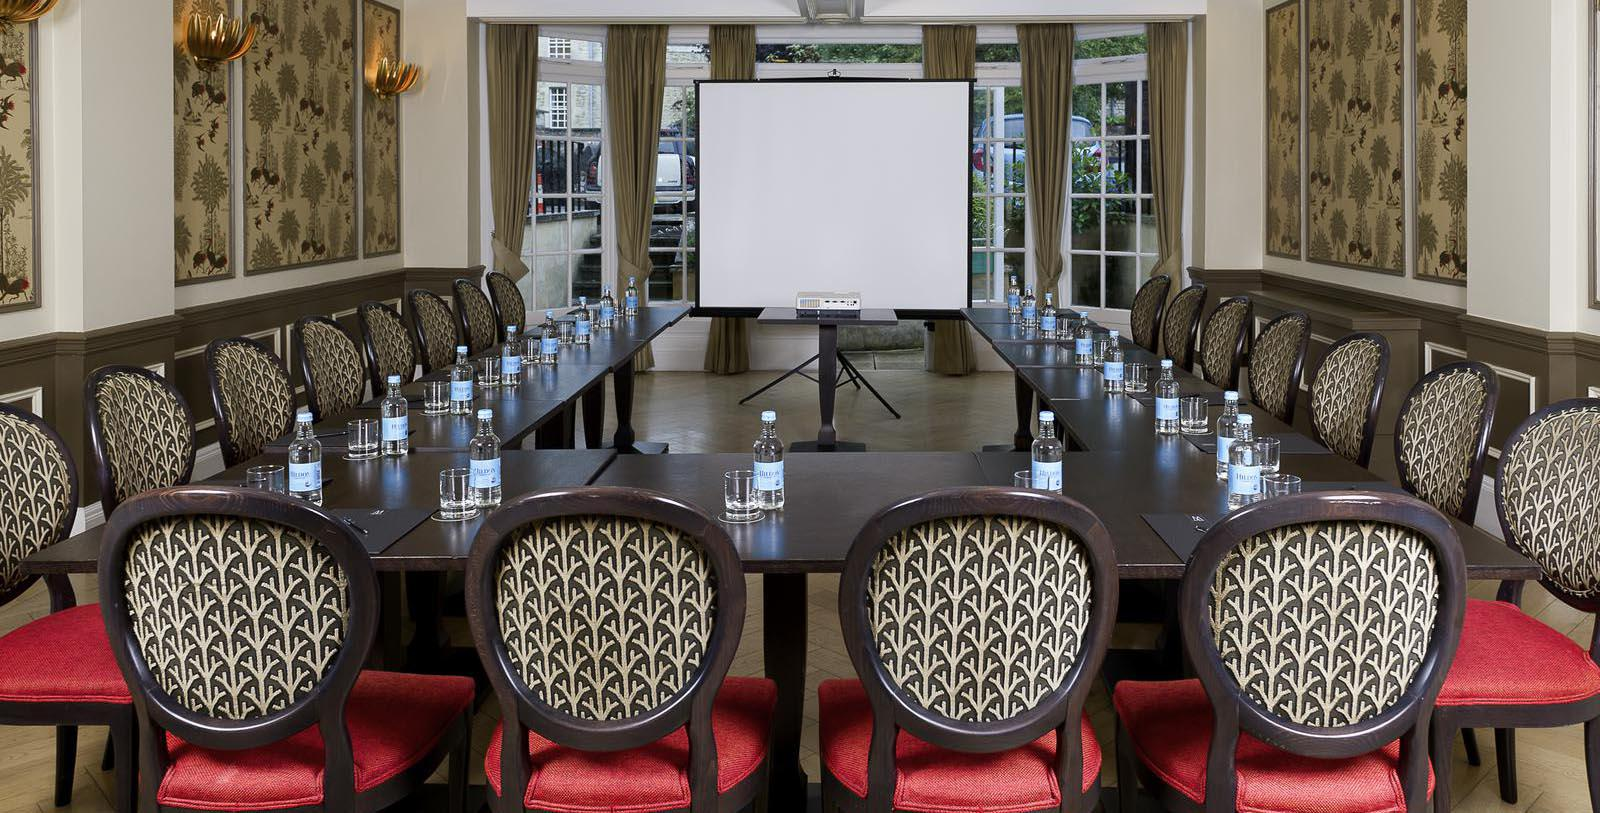 Meetings at      Francis Hotel Bath - MGallery by Sofitel  in Bath